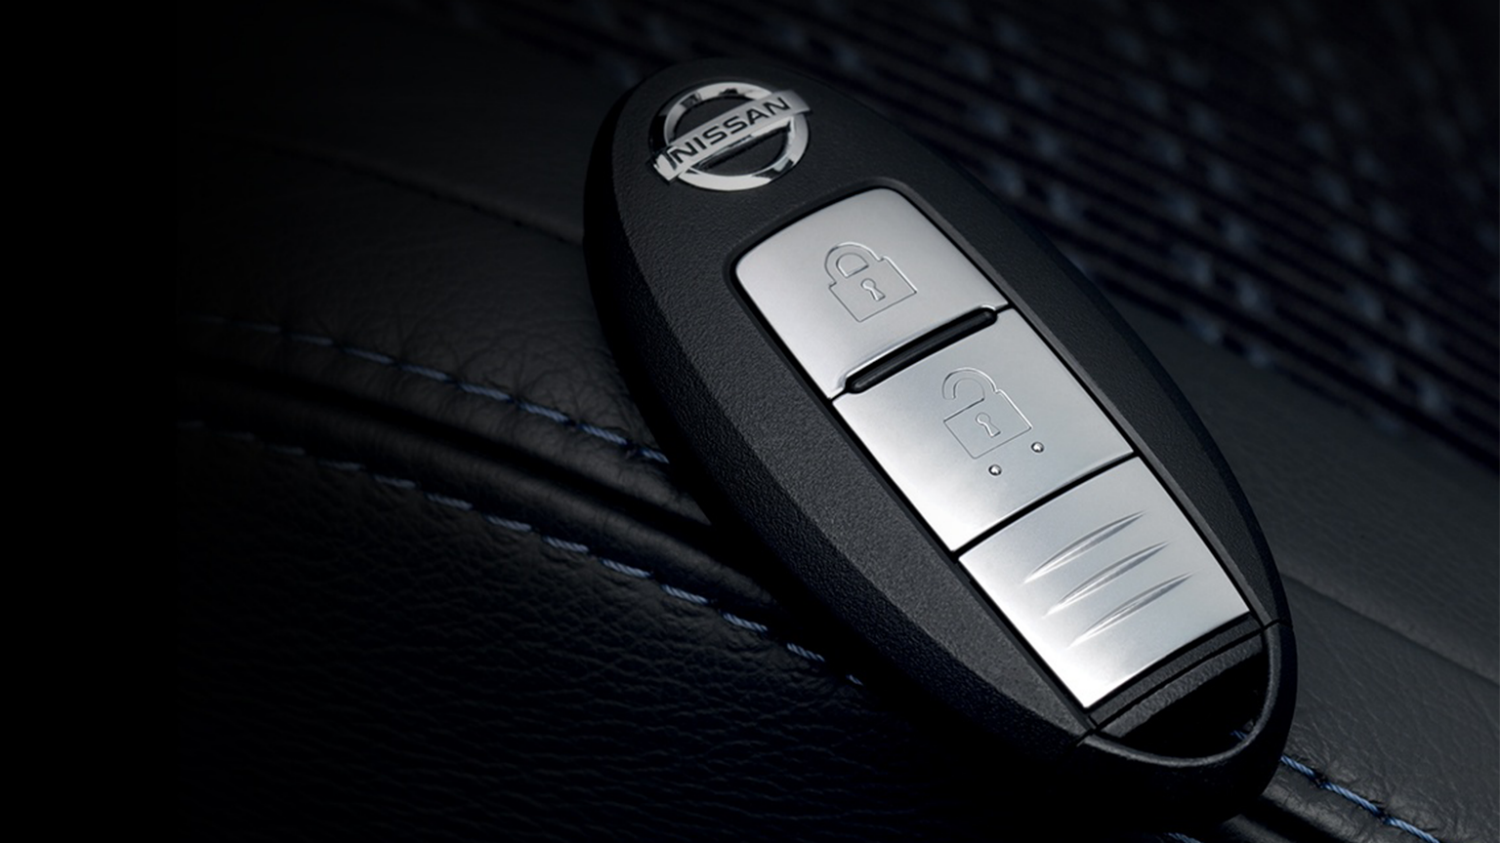 Nissan PULSAR - Intelligent Key